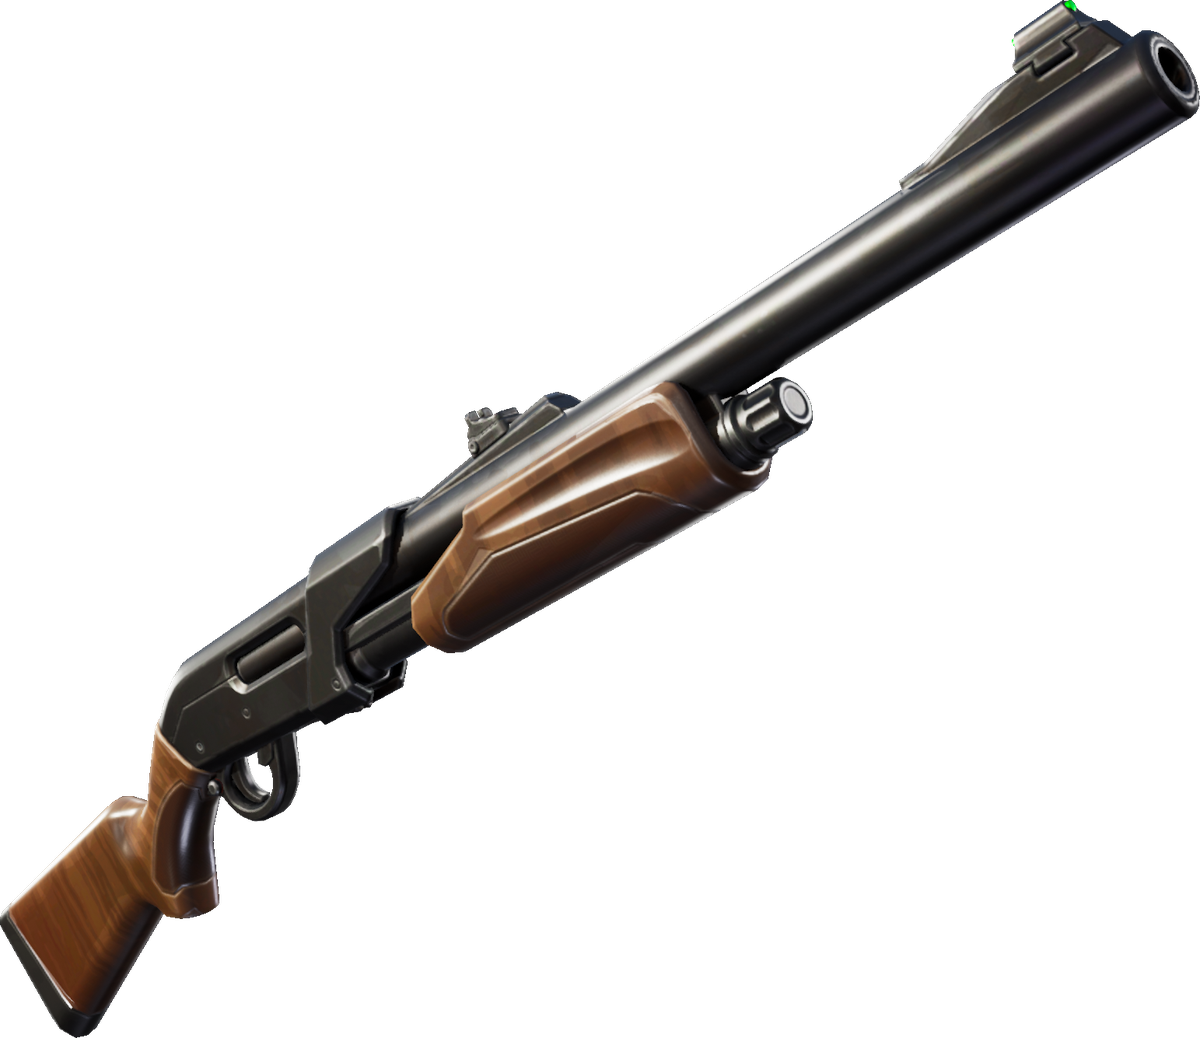 Fortnite Chapter 2 Pump Shotgun Common